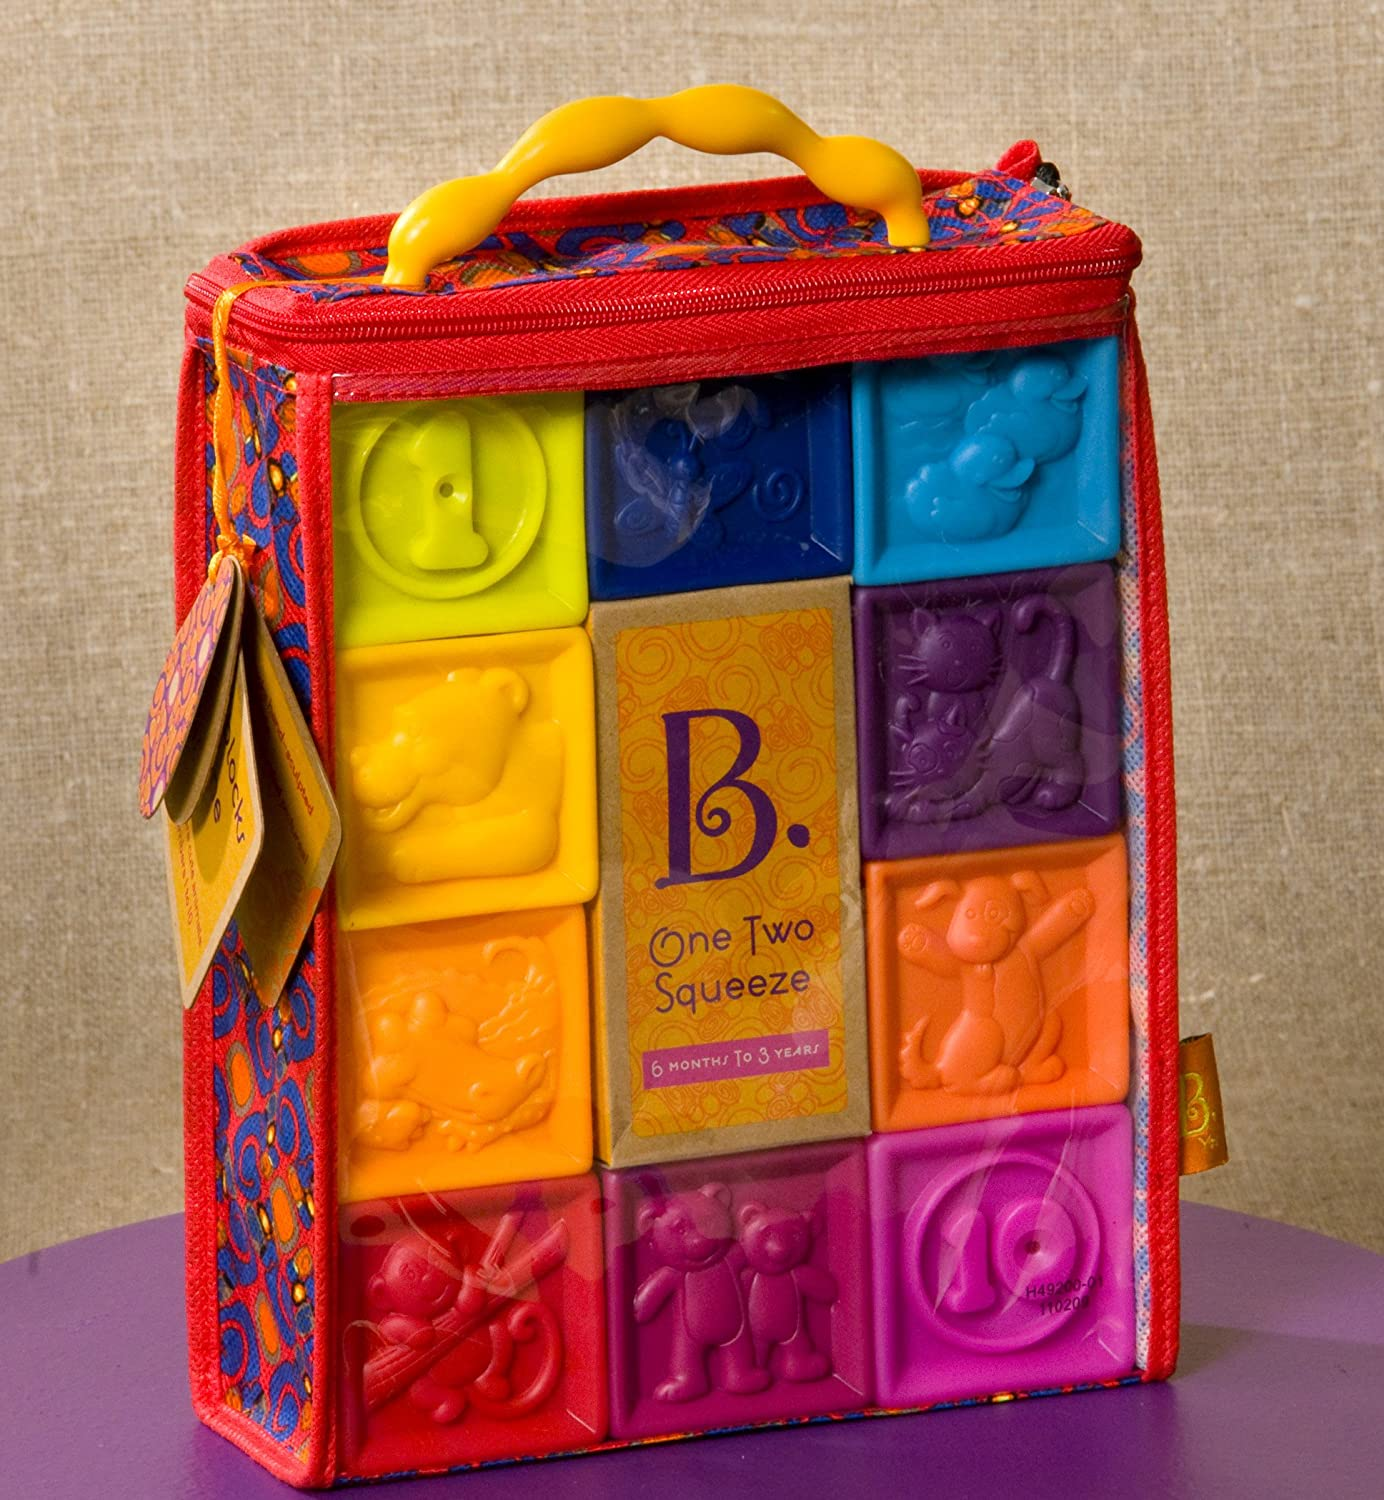 B. Toys B. One Two Squeeze Blocks